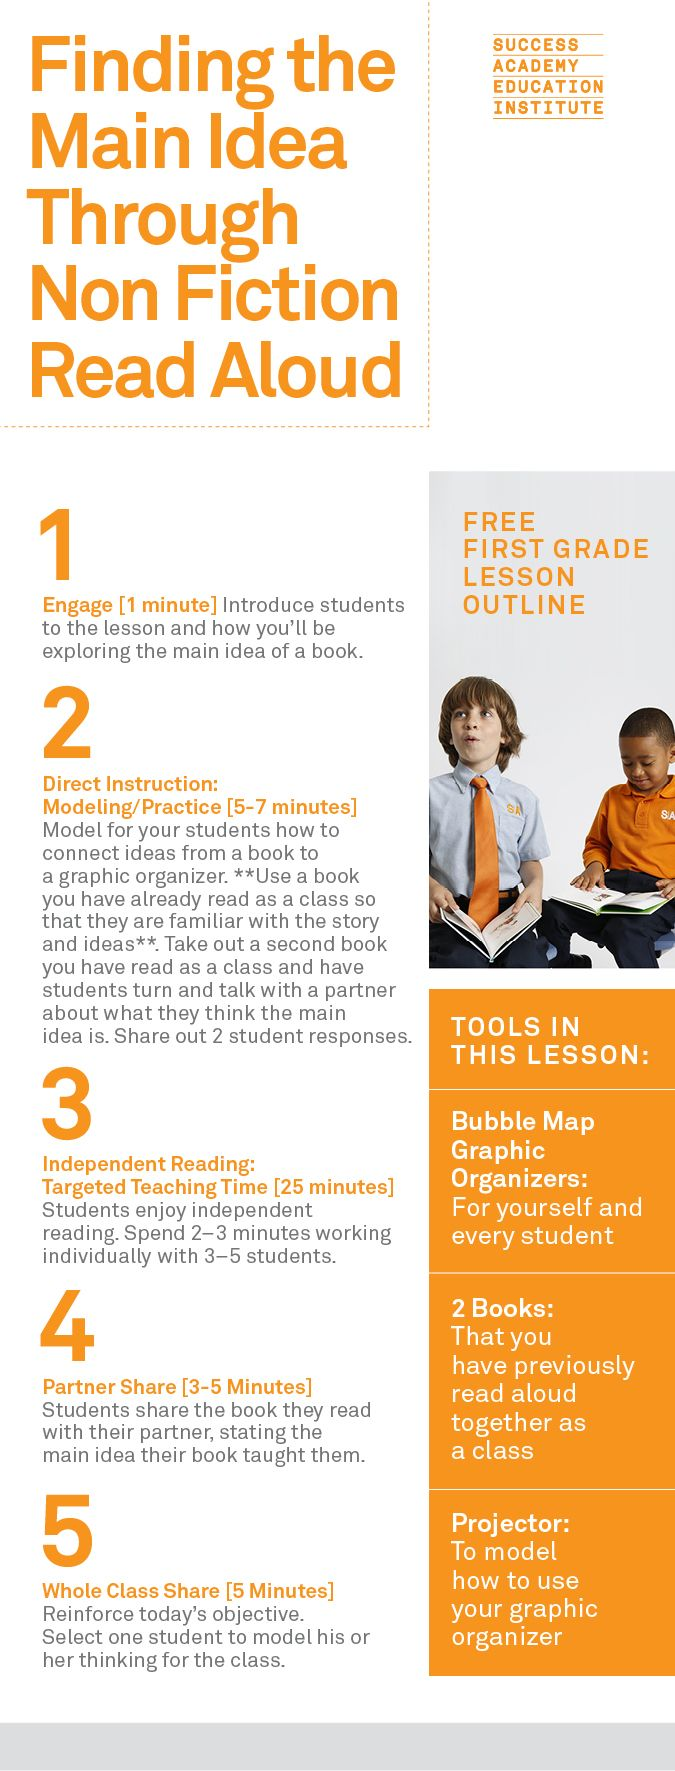 Non Fiction Read Aloud | Use this reading lesson to help students tackle non fiction texts. Free from the Success Academy Ed Institute, this first grade outline will help you organize and time your lesson to include direct instruction, independent reading, partner share, and whole class share!